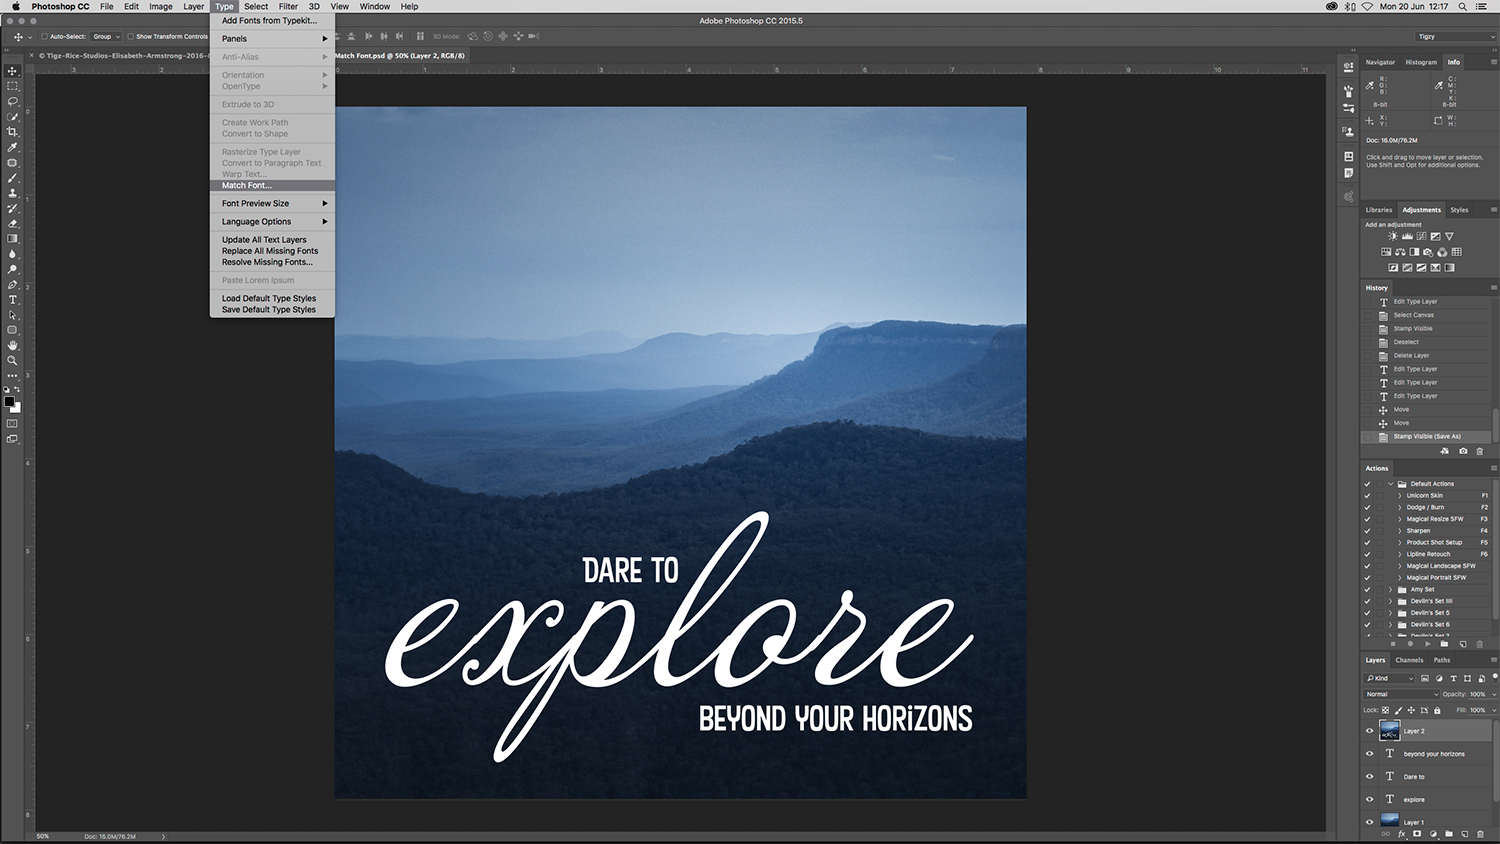 Photoshop tutorial how to use photoshops new match font tool to photoshop tutorial how to use photoshops new match font tool to identify fonts used in photos and designs digital arts baditri Choice Image